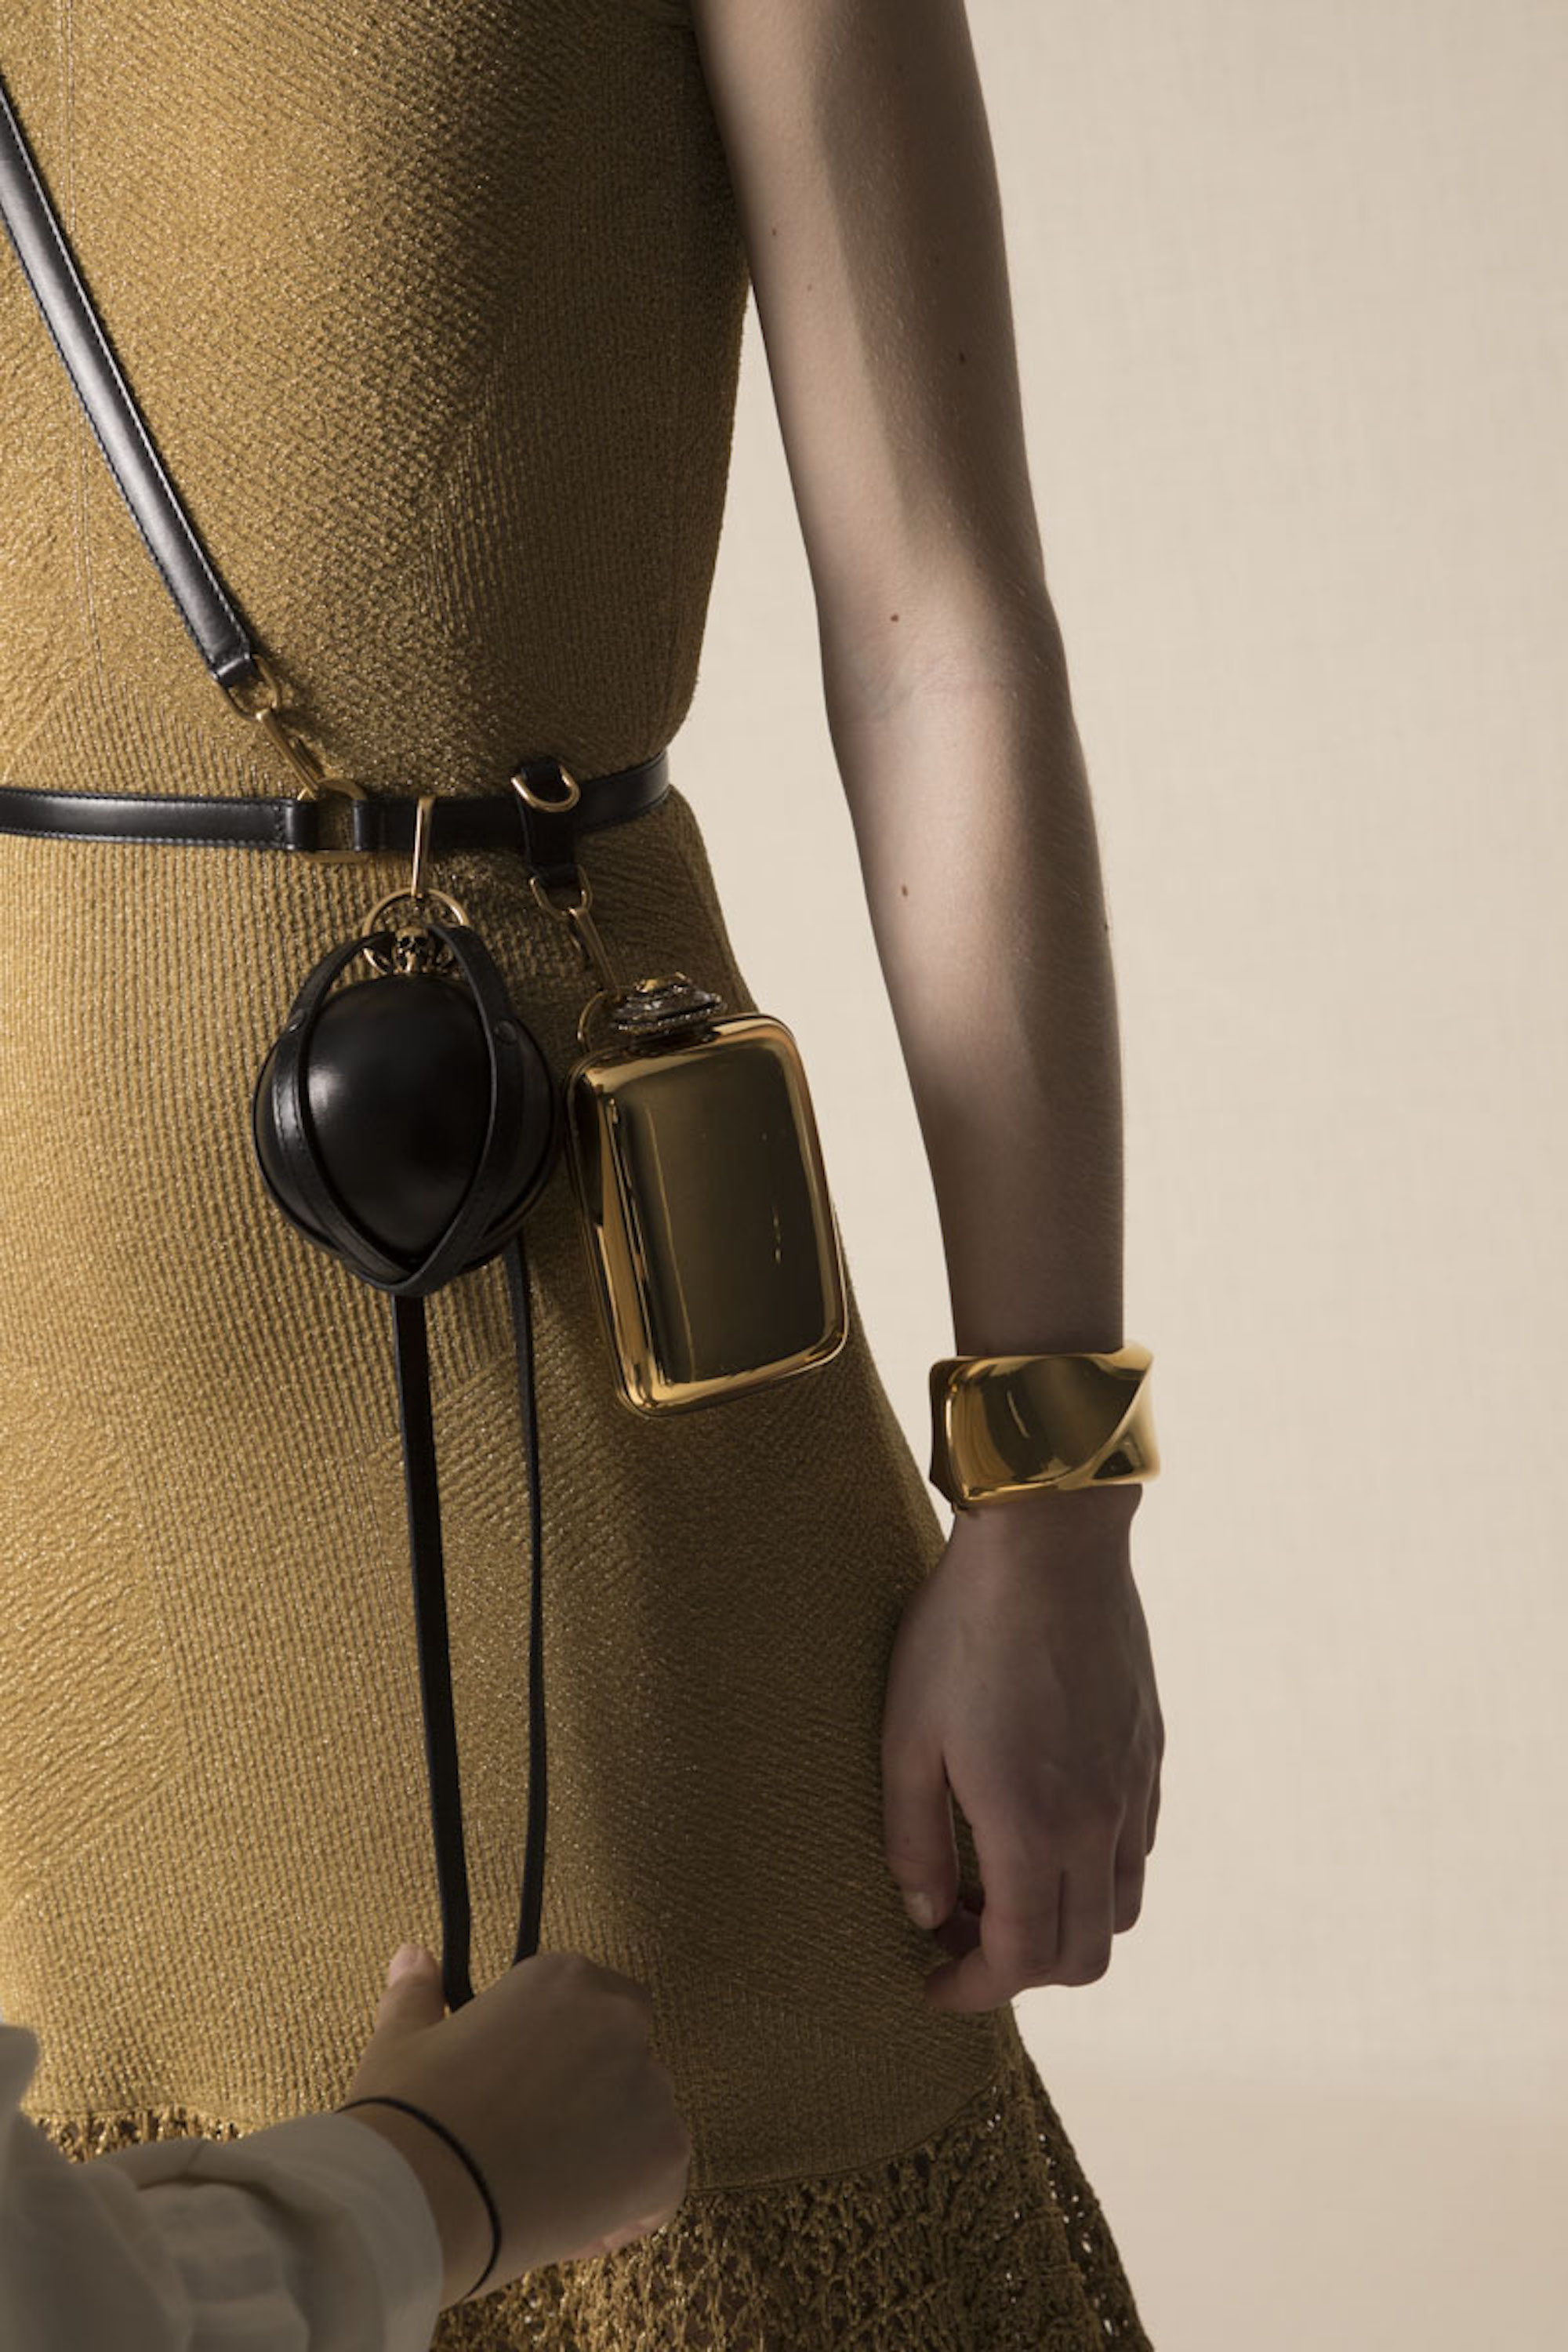 Alexander McQueen AW20 Pre Fall Accessories Bag Harness